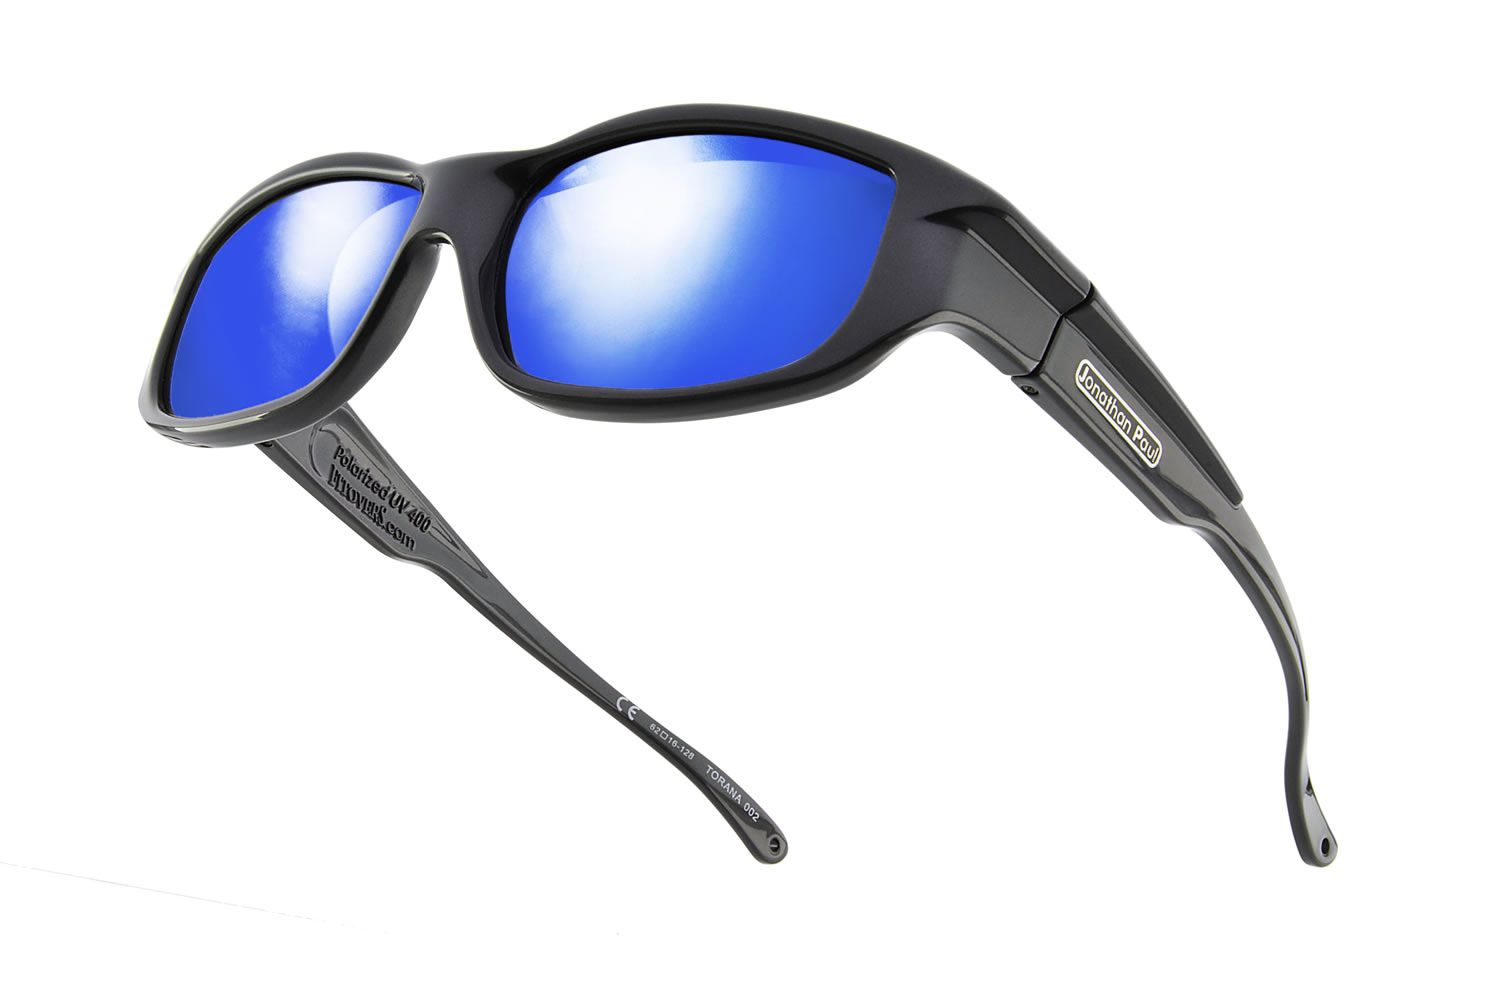 0d5ba7c71b Torana™ Dark Charcoal (Blue Mirror) - the Fashionable Jonathan Paul® Fitovers  Eyewear - fitover sunglasses  designed to fit over prescription glasses or  be ...